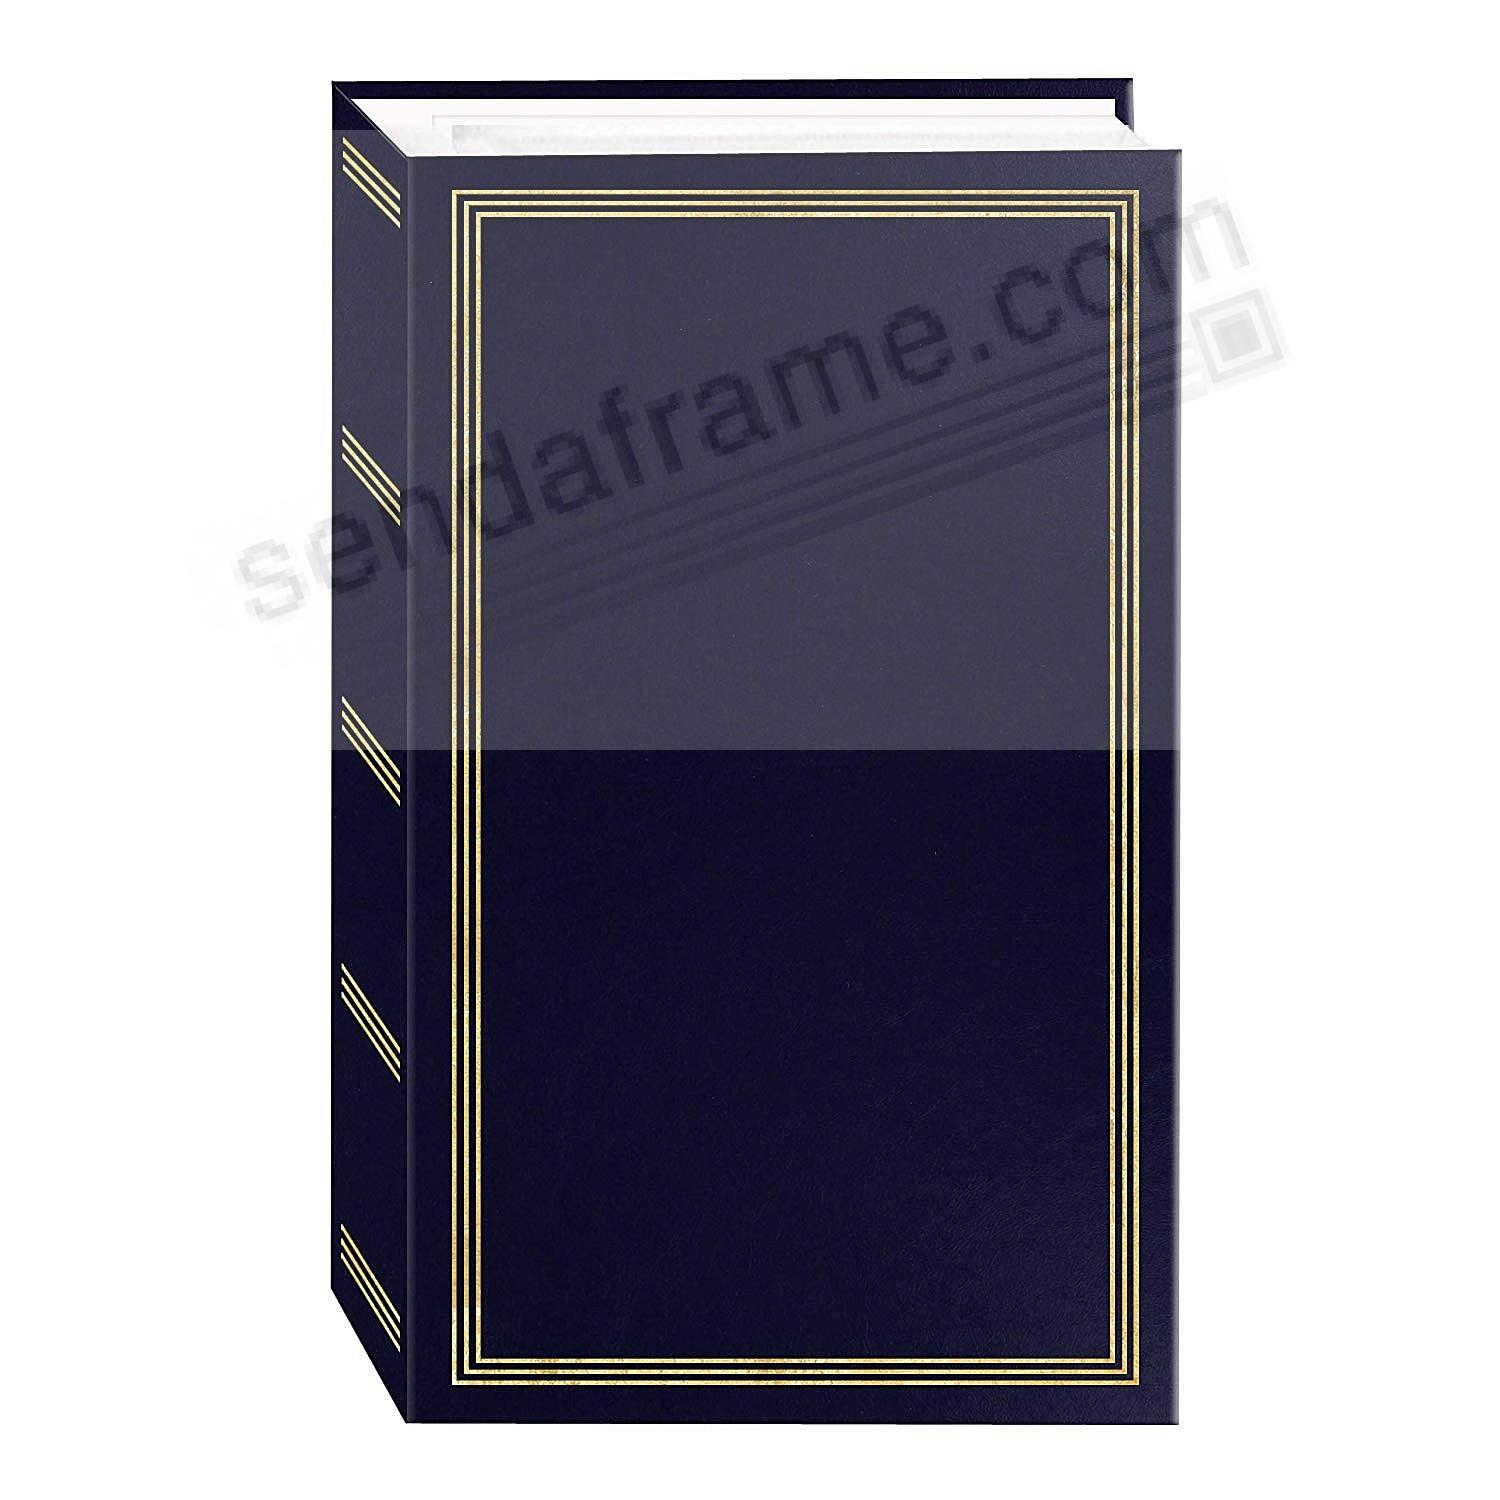 3-ring pocket NAVY-BLUE album for 500+ photos by Pioneer®